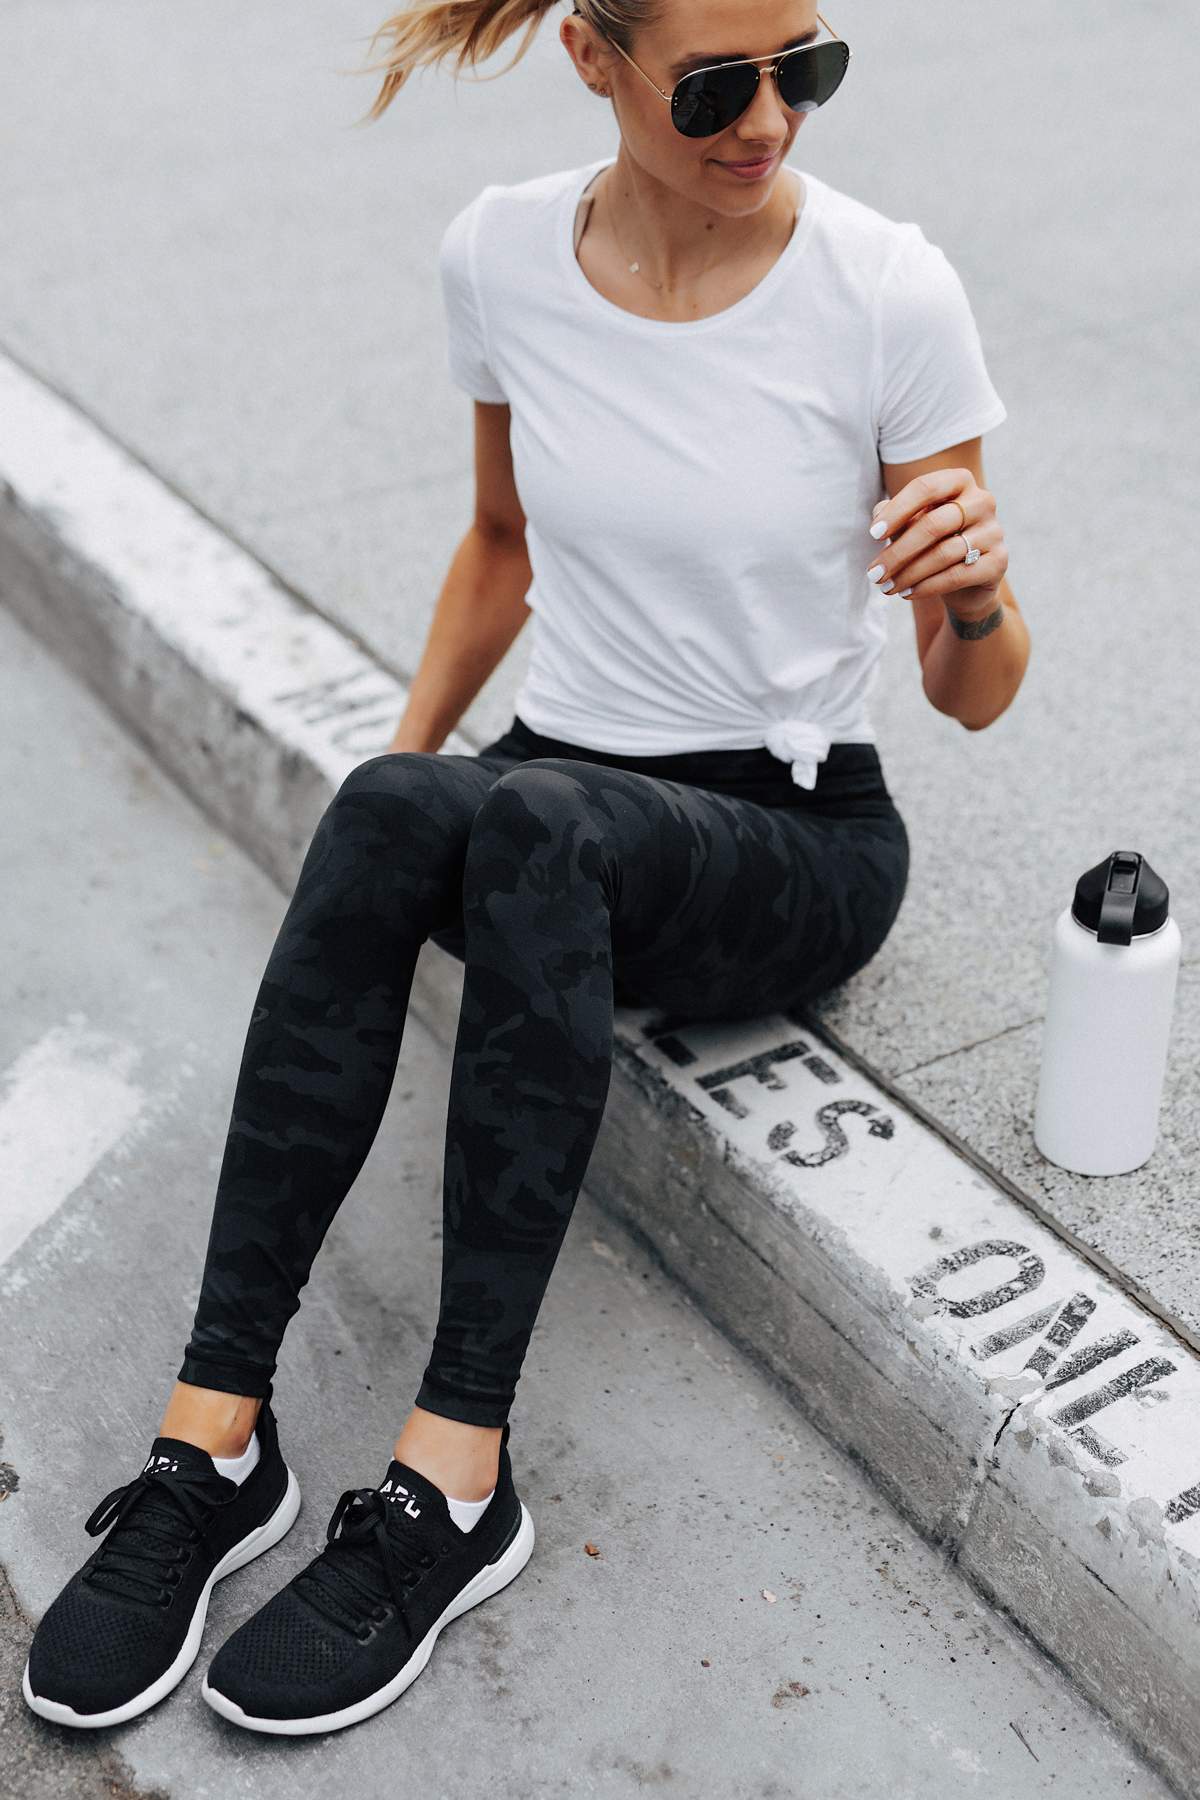 Blonde Woman Wearing Lululemon Align Pants Black Camo Print White Top APL Black Sneakers Fashion Jackson San Diego Fashion Blogger Fitness Style